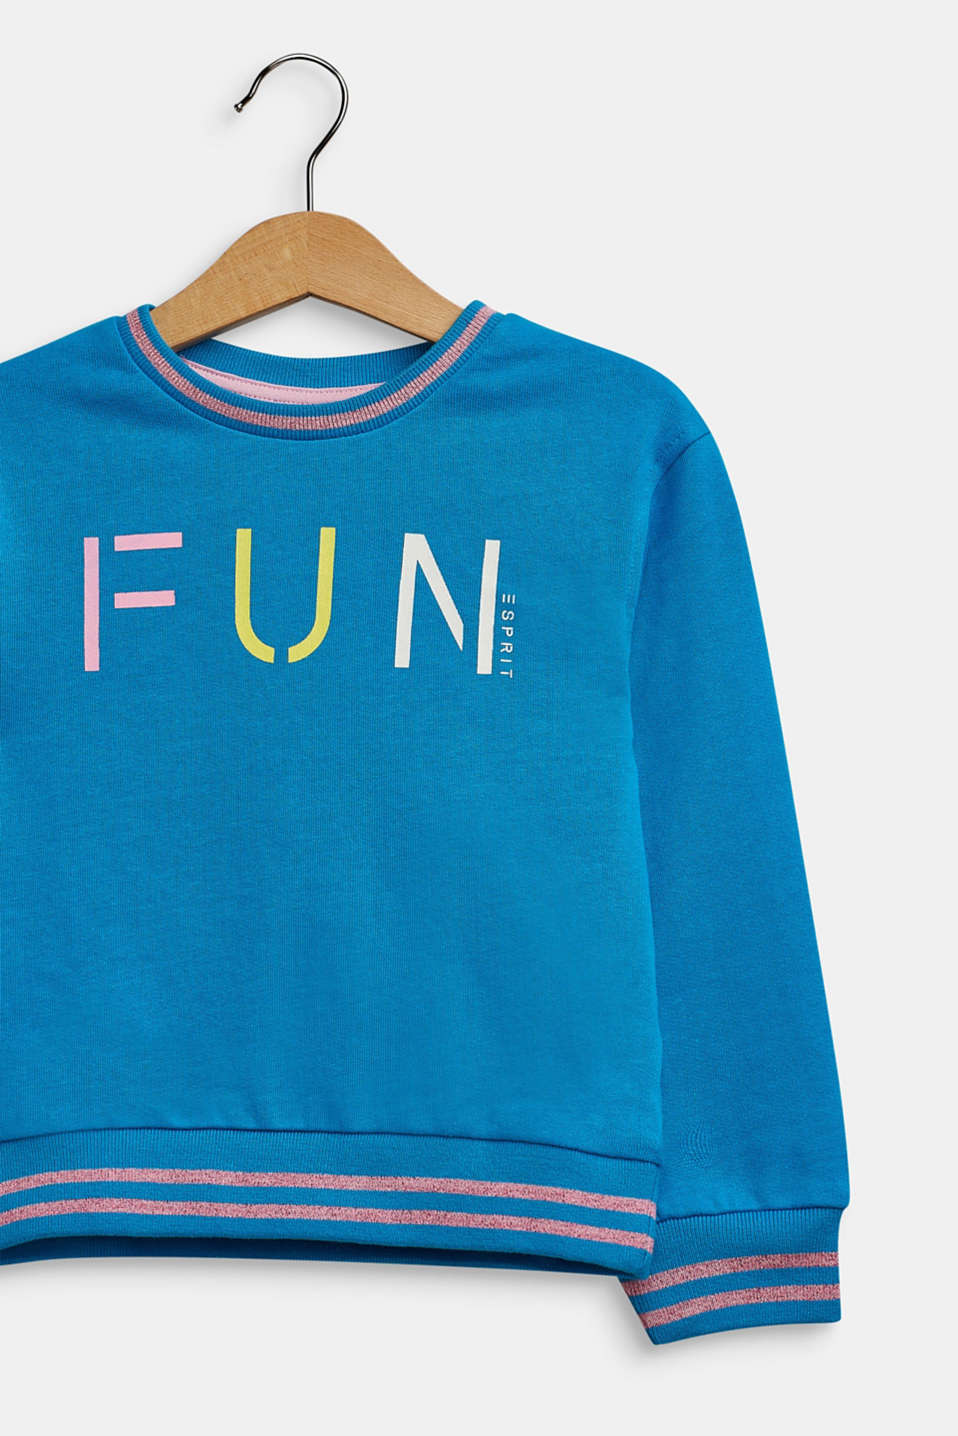 Sweatshirt in 100% cotton, TURQUOISE, detail image number 2